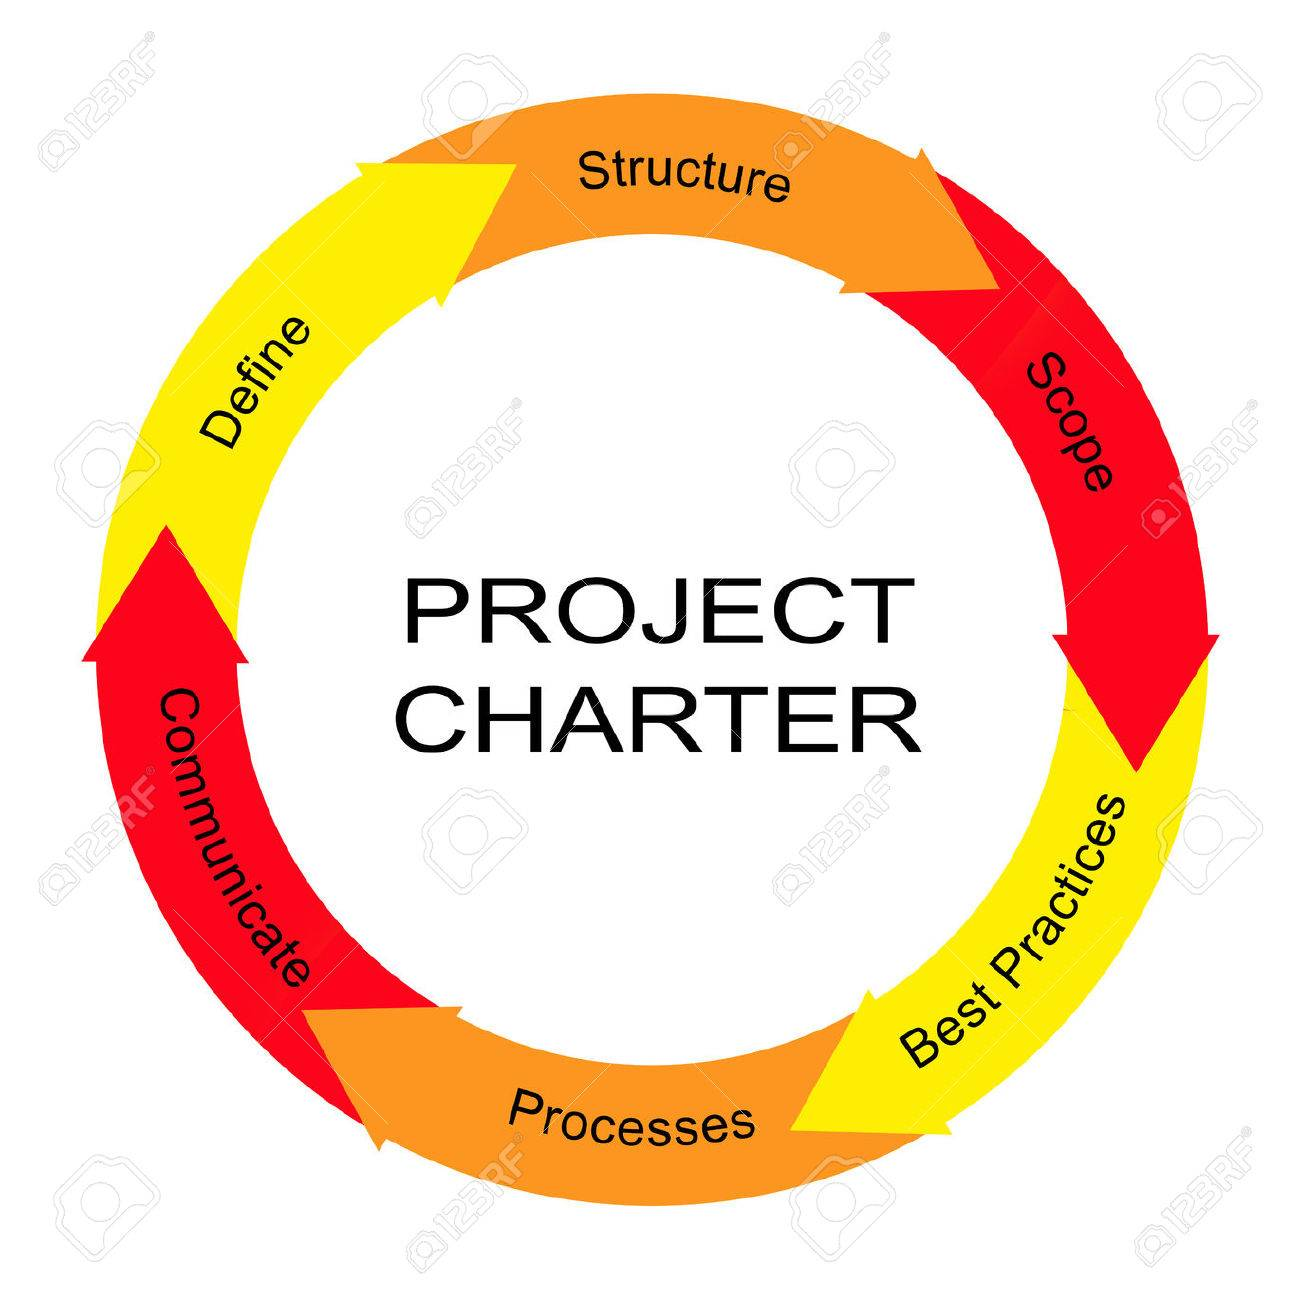 Project Charter Word Circle Arrow Concept with great terms such as define, structure, scope and more. - 38932602